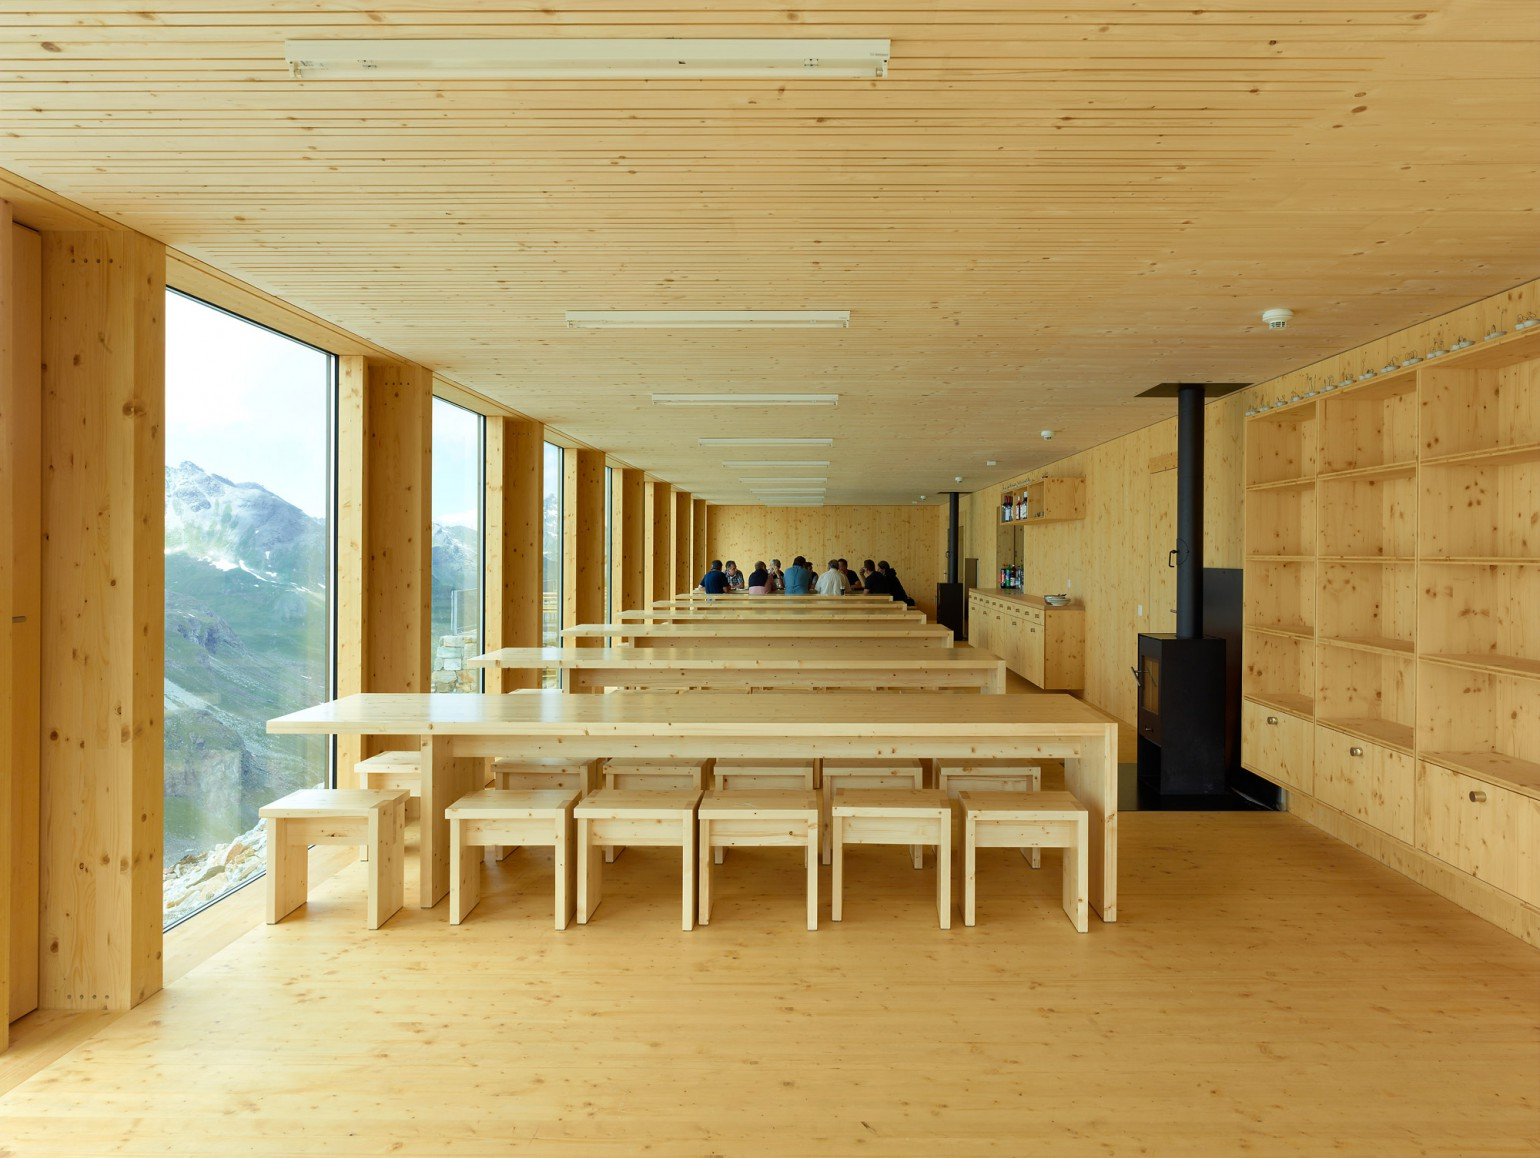 Cabane De Moiry Meyer Architecture Sion: meyer architecture